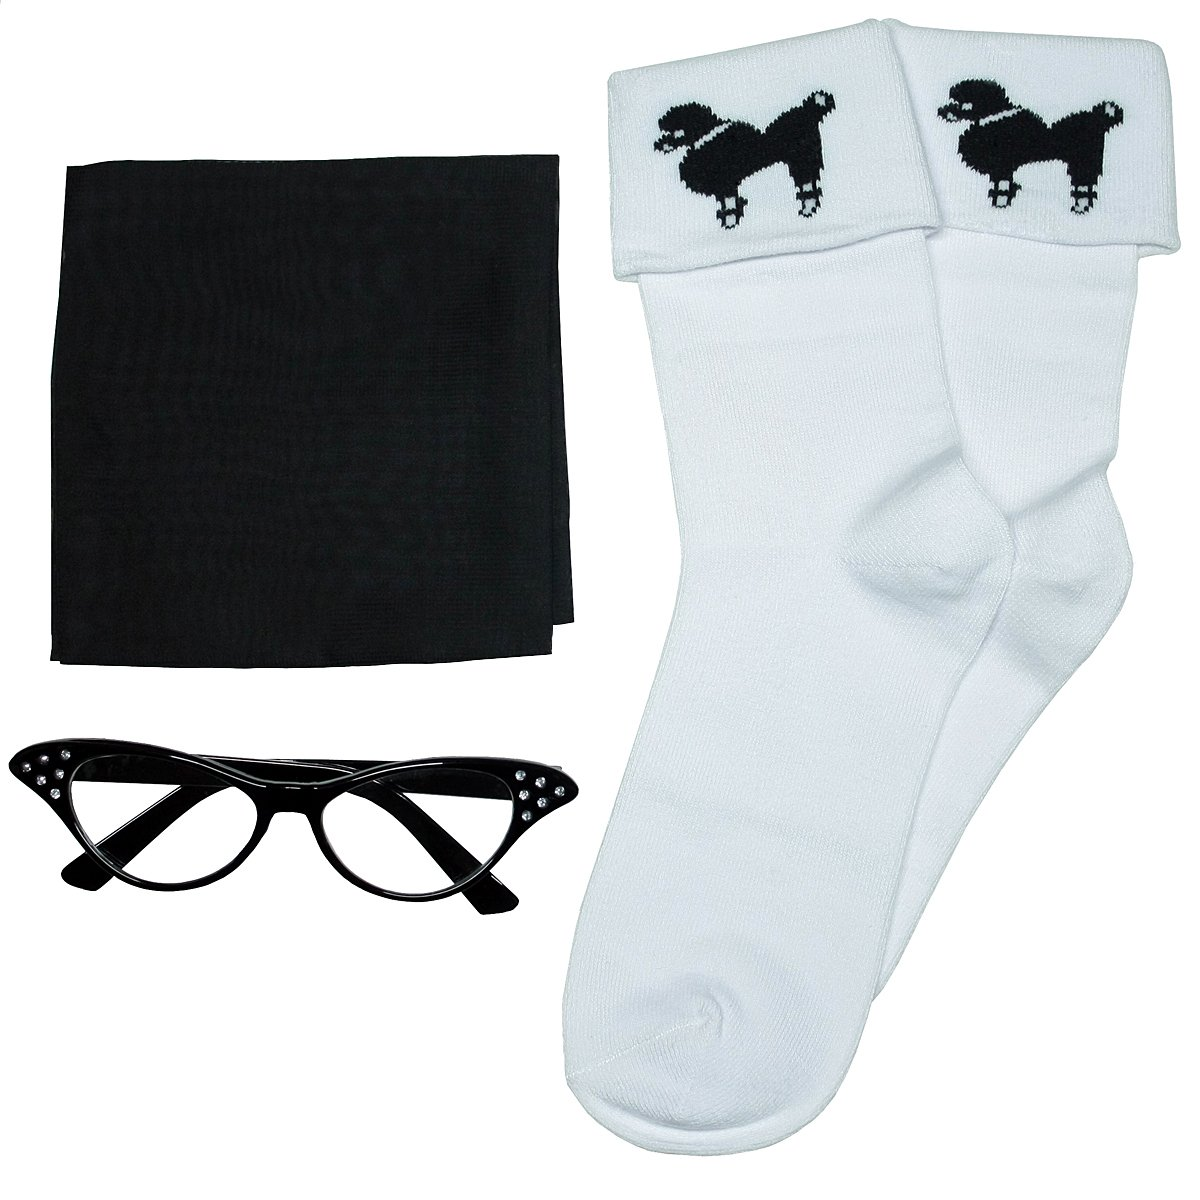 3 BIG NOTES - Adult 3 Pcs Accessories for Poodle Skirts (Cateye Glasses, Scarf, Socks) (Black)